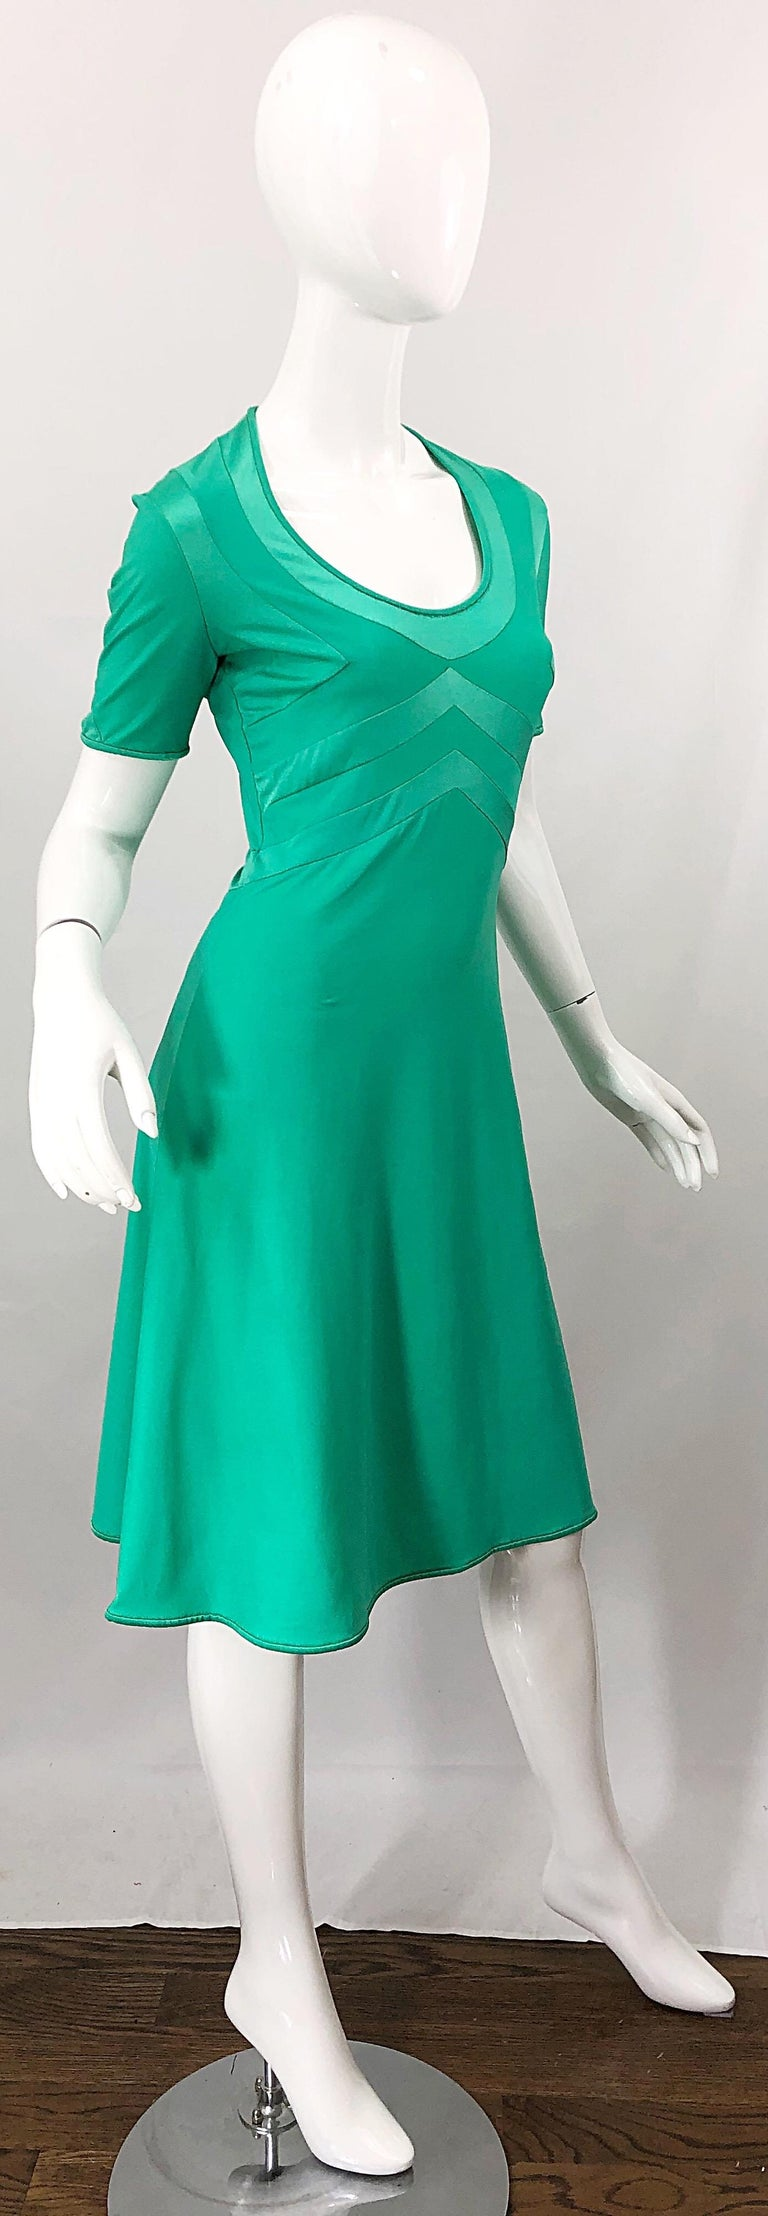 Giorgio di Sant Angelo Kelly Green Slinky Bodysuit Vintage 70s Jersey Dress For Sale 7